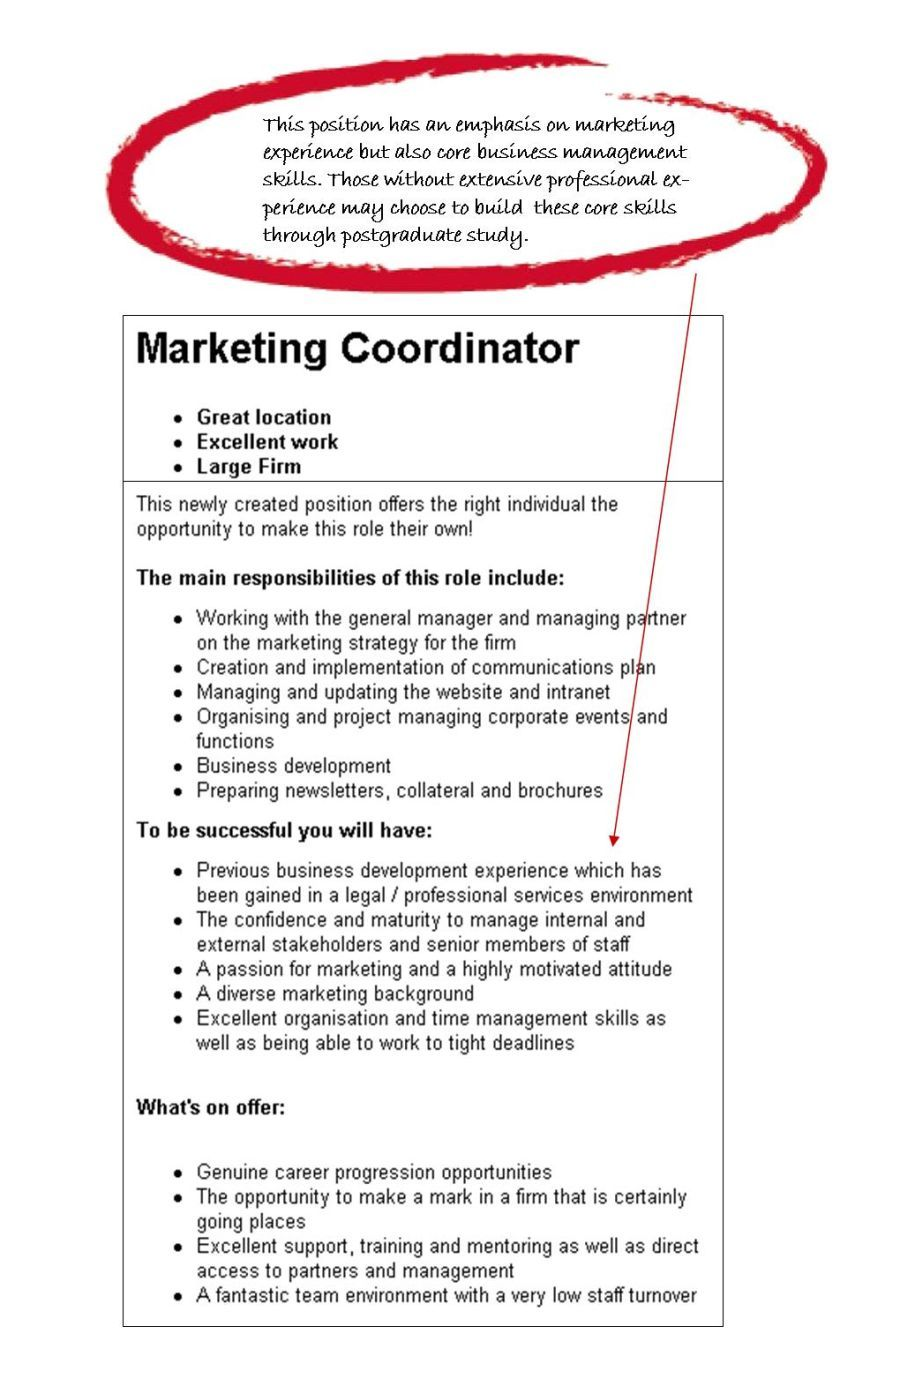 Objectives In Resume Objectives For Resume  Resume  Pinterest  Resume Objective And